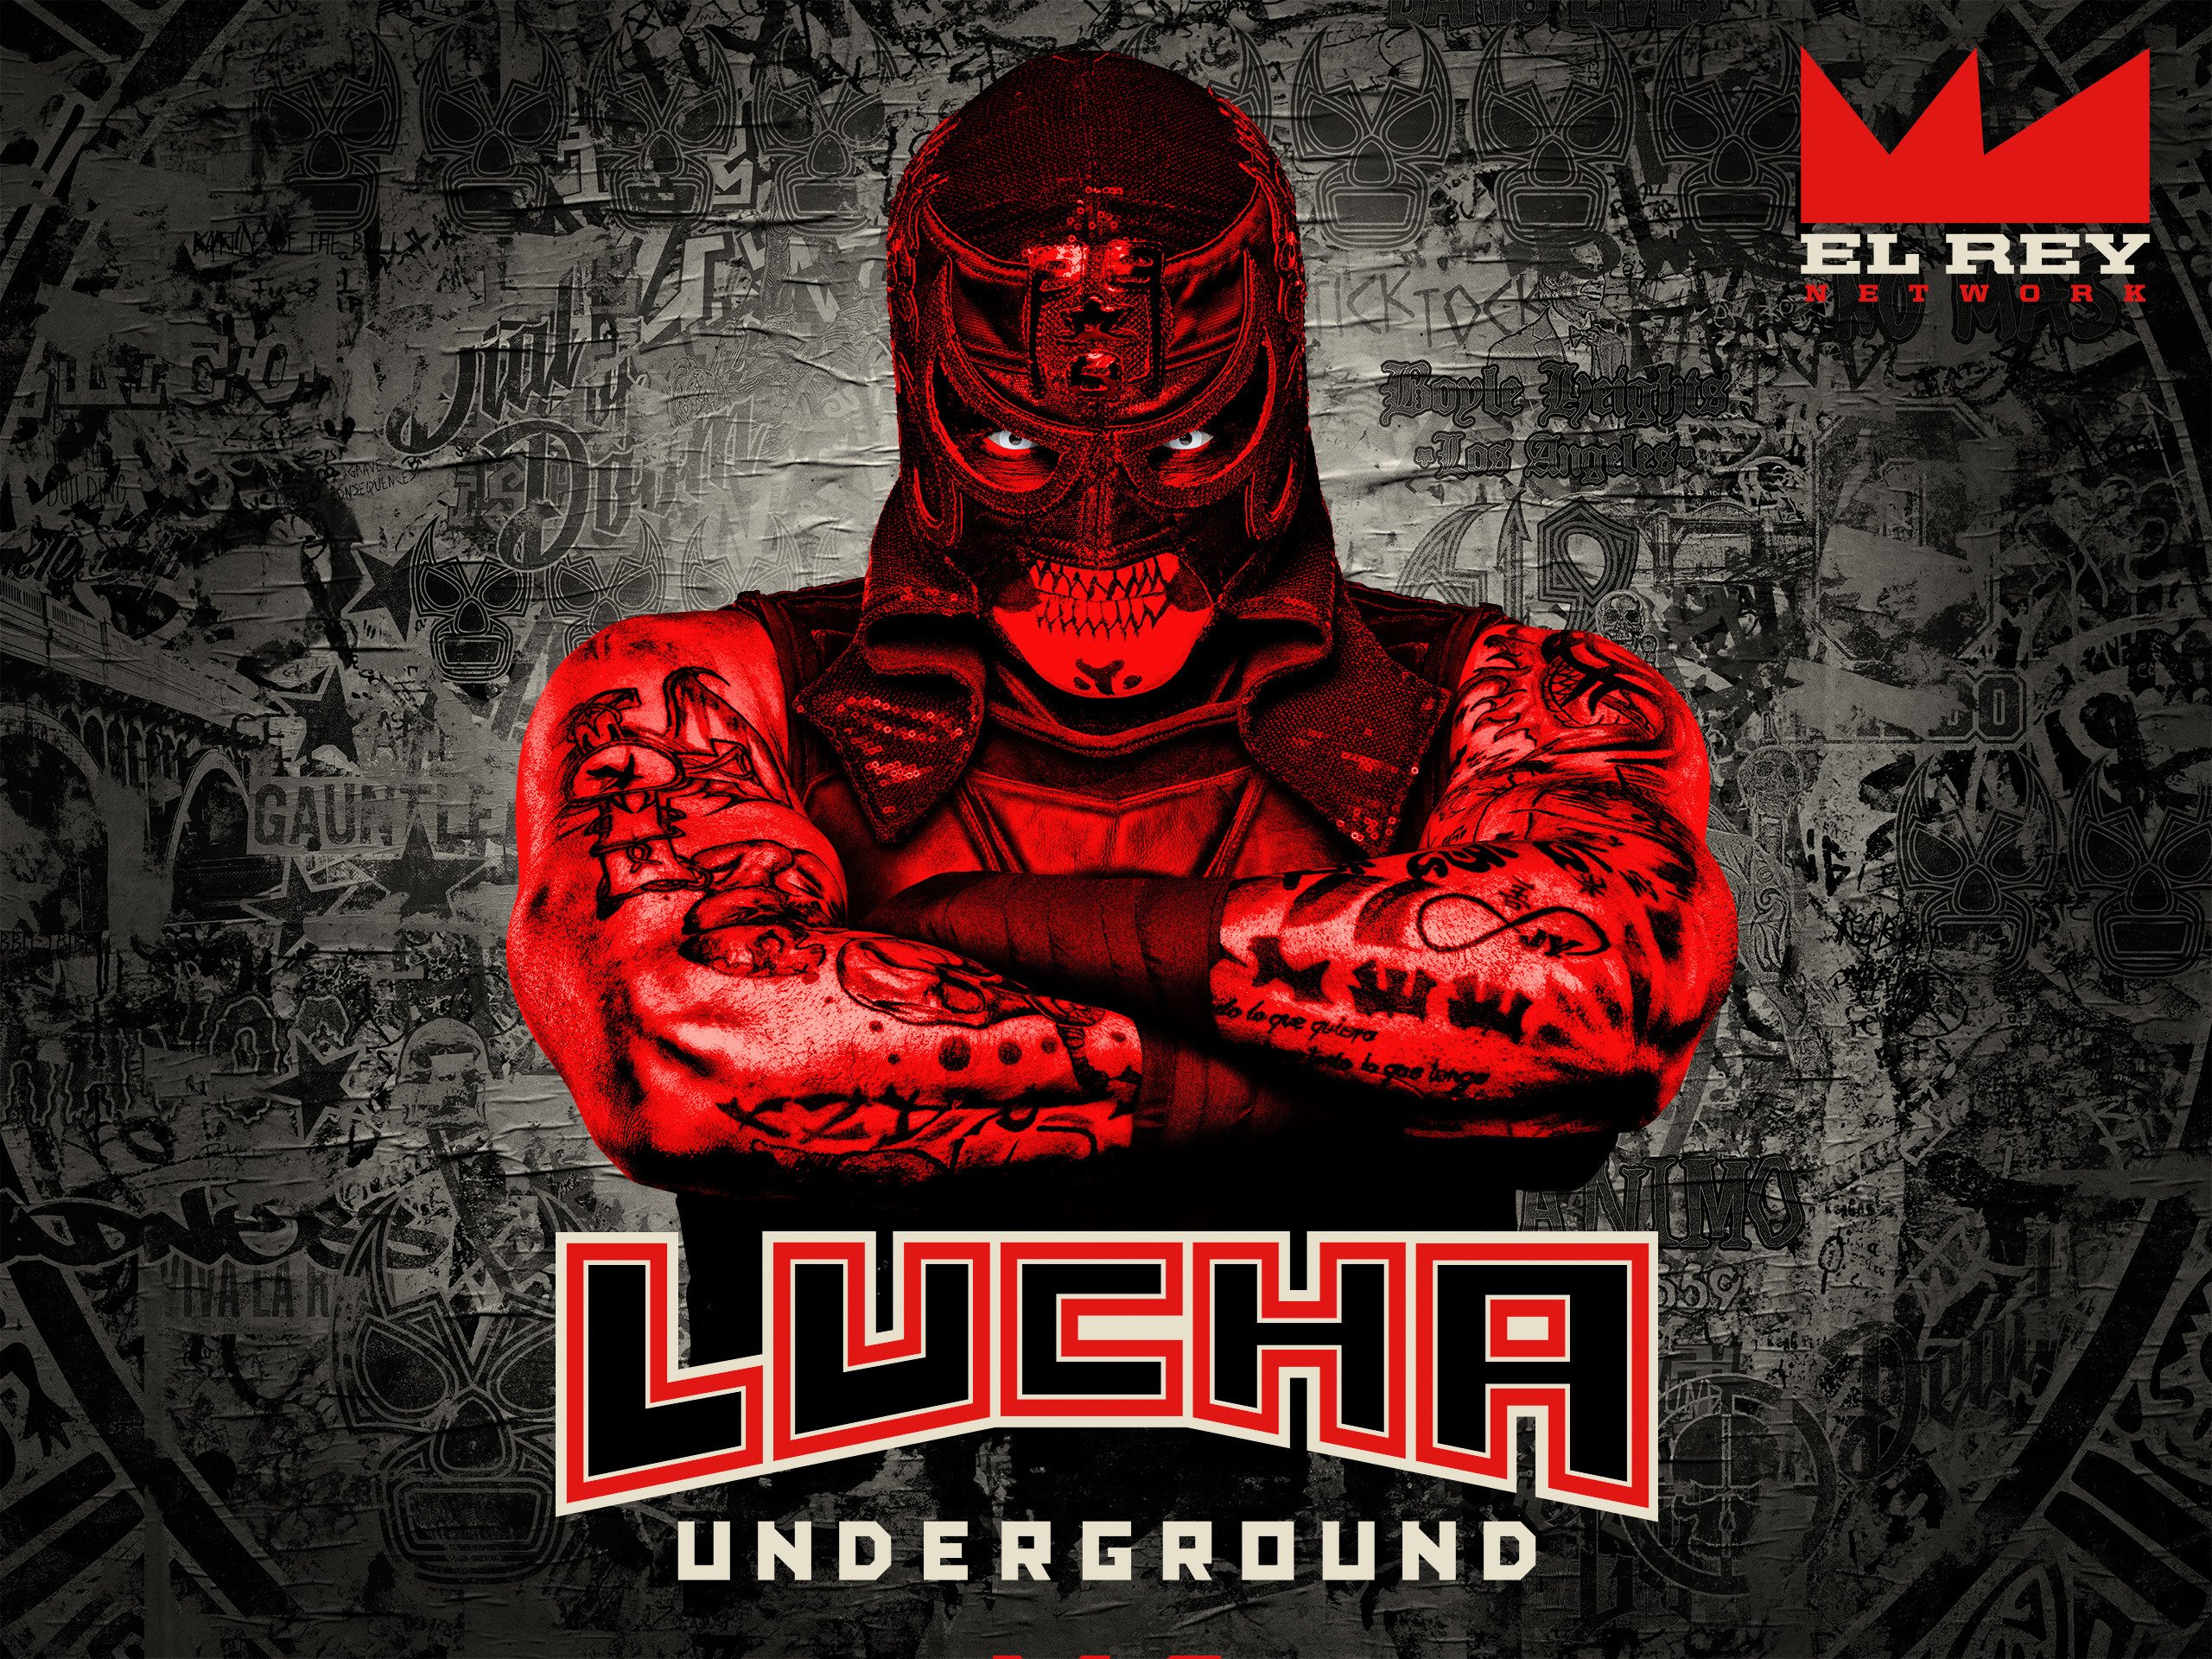 Amazon.com: Lucha Underground - Season 3: Matt Striker, Vampiro, Melissa Santos: Amazon Digital Services LLC